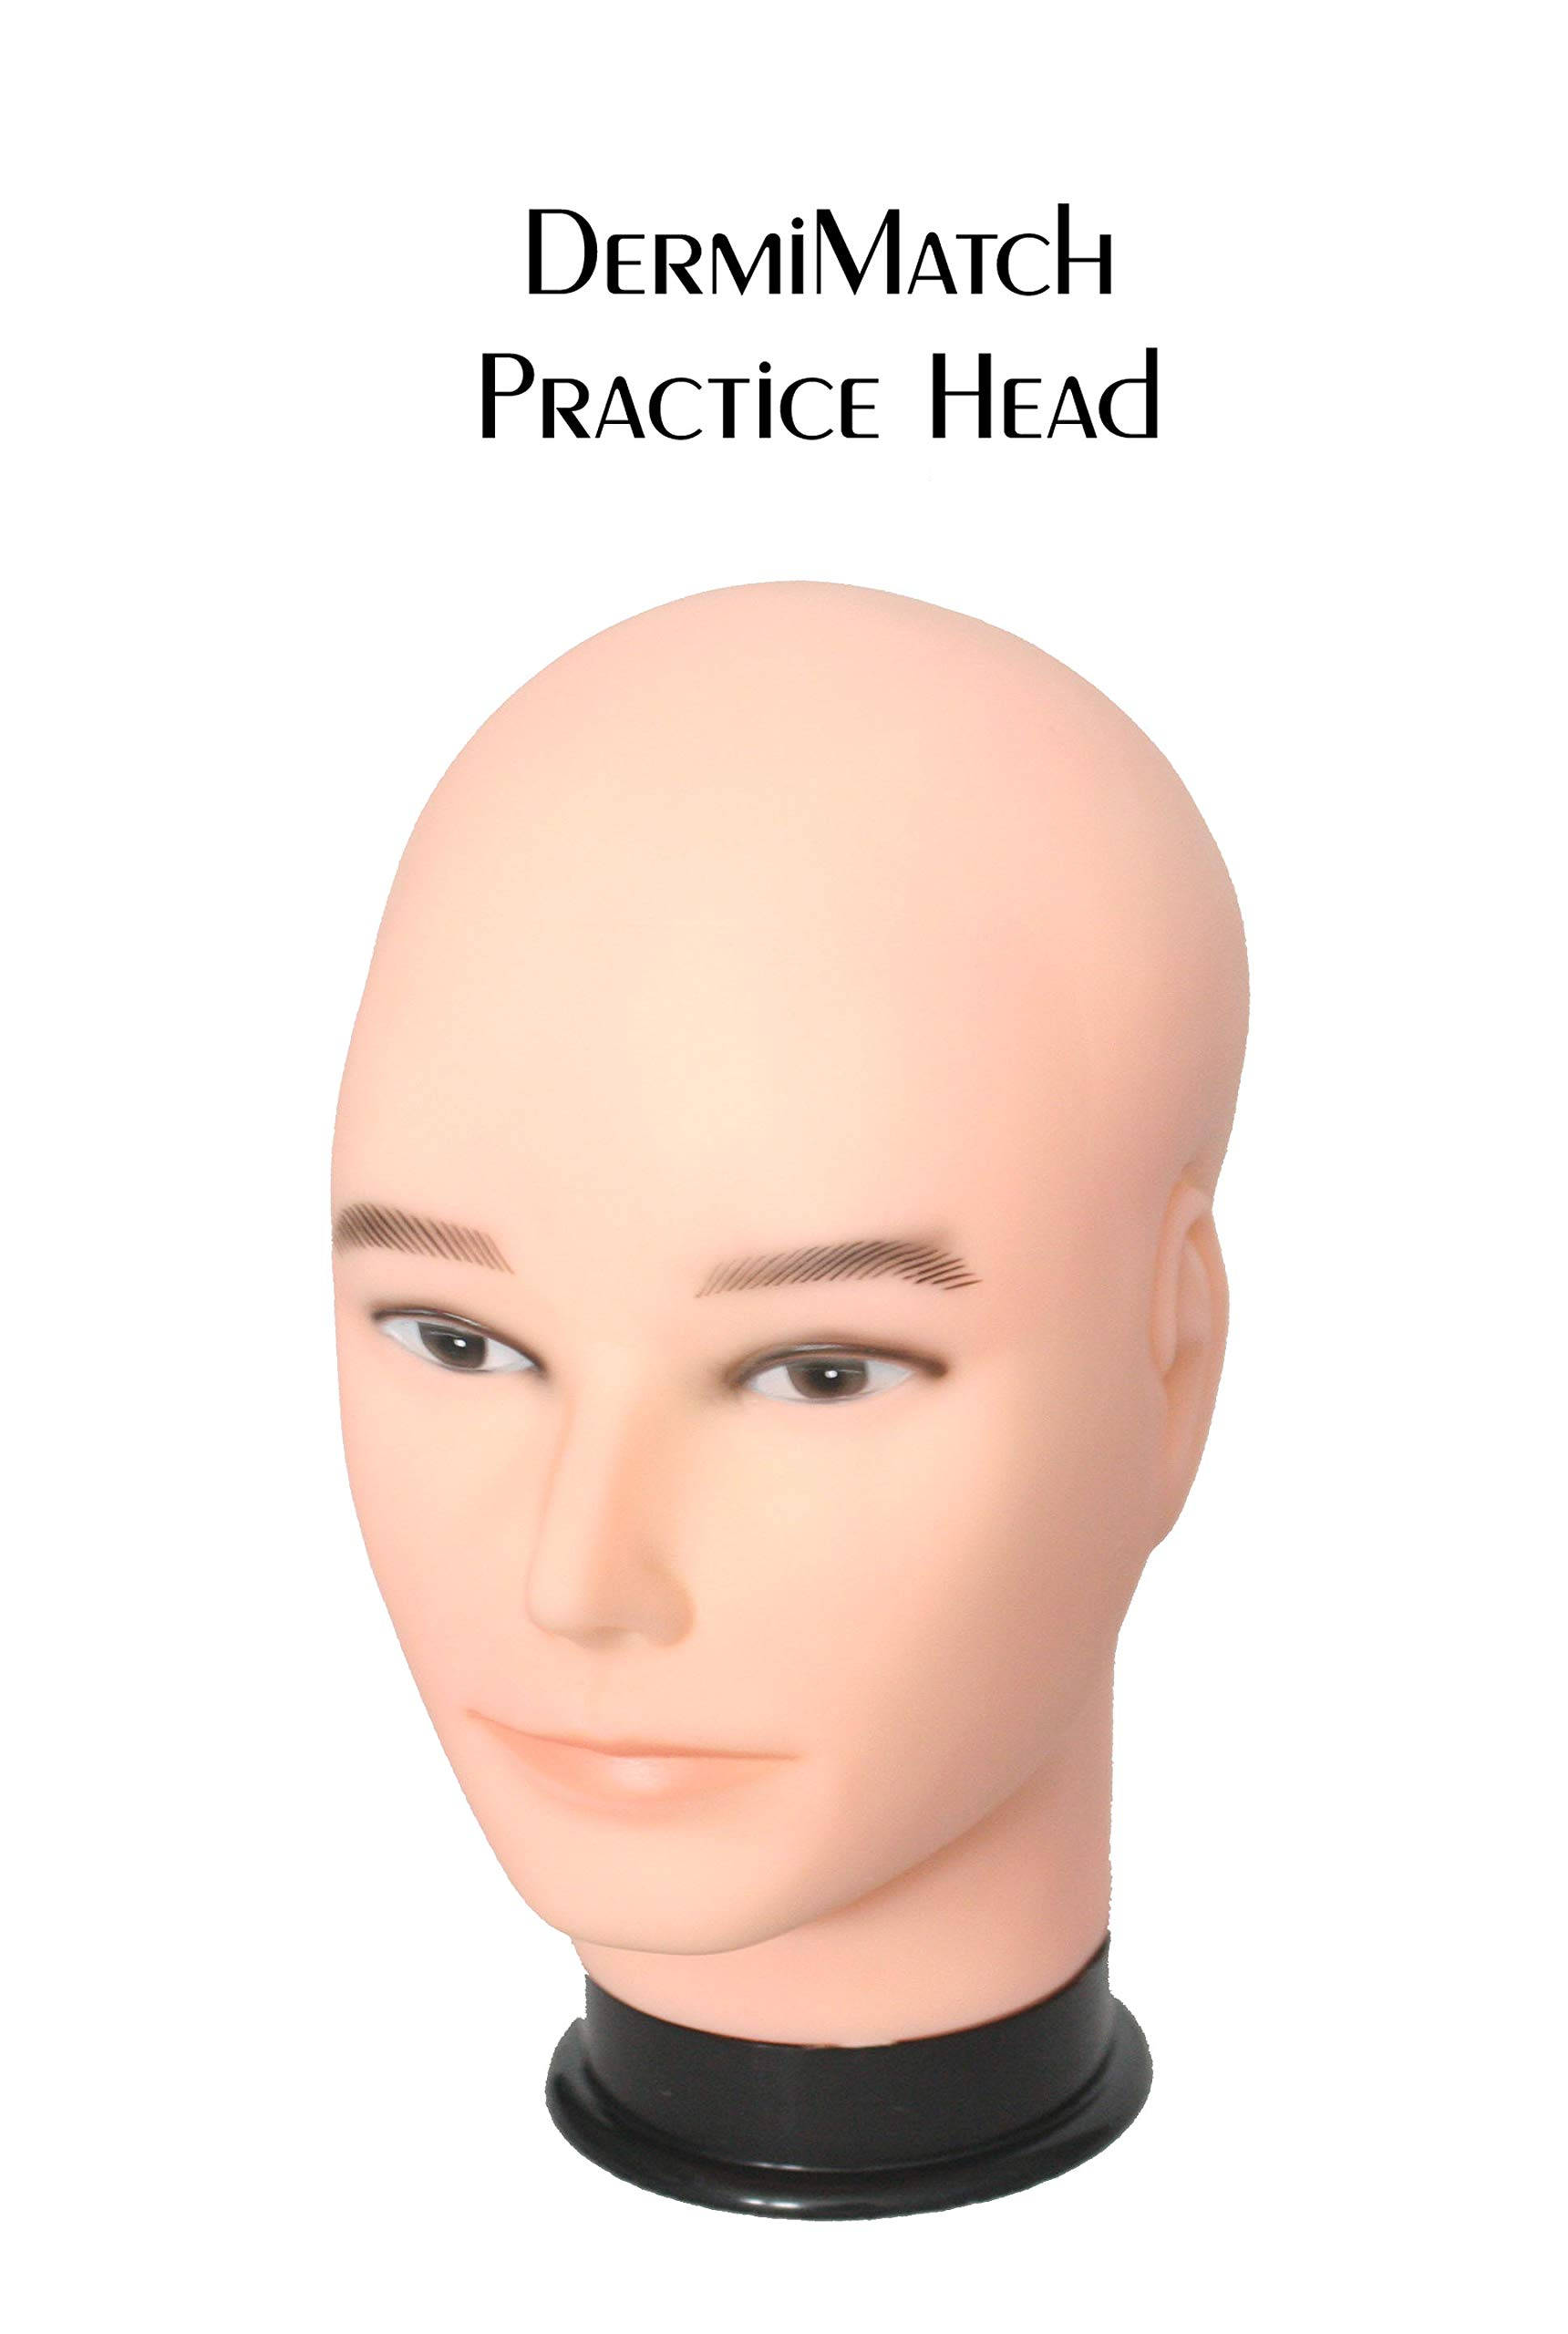 Amazon.com : Practice head for smp scalp micropigmentation by DermiMatch : Beauty